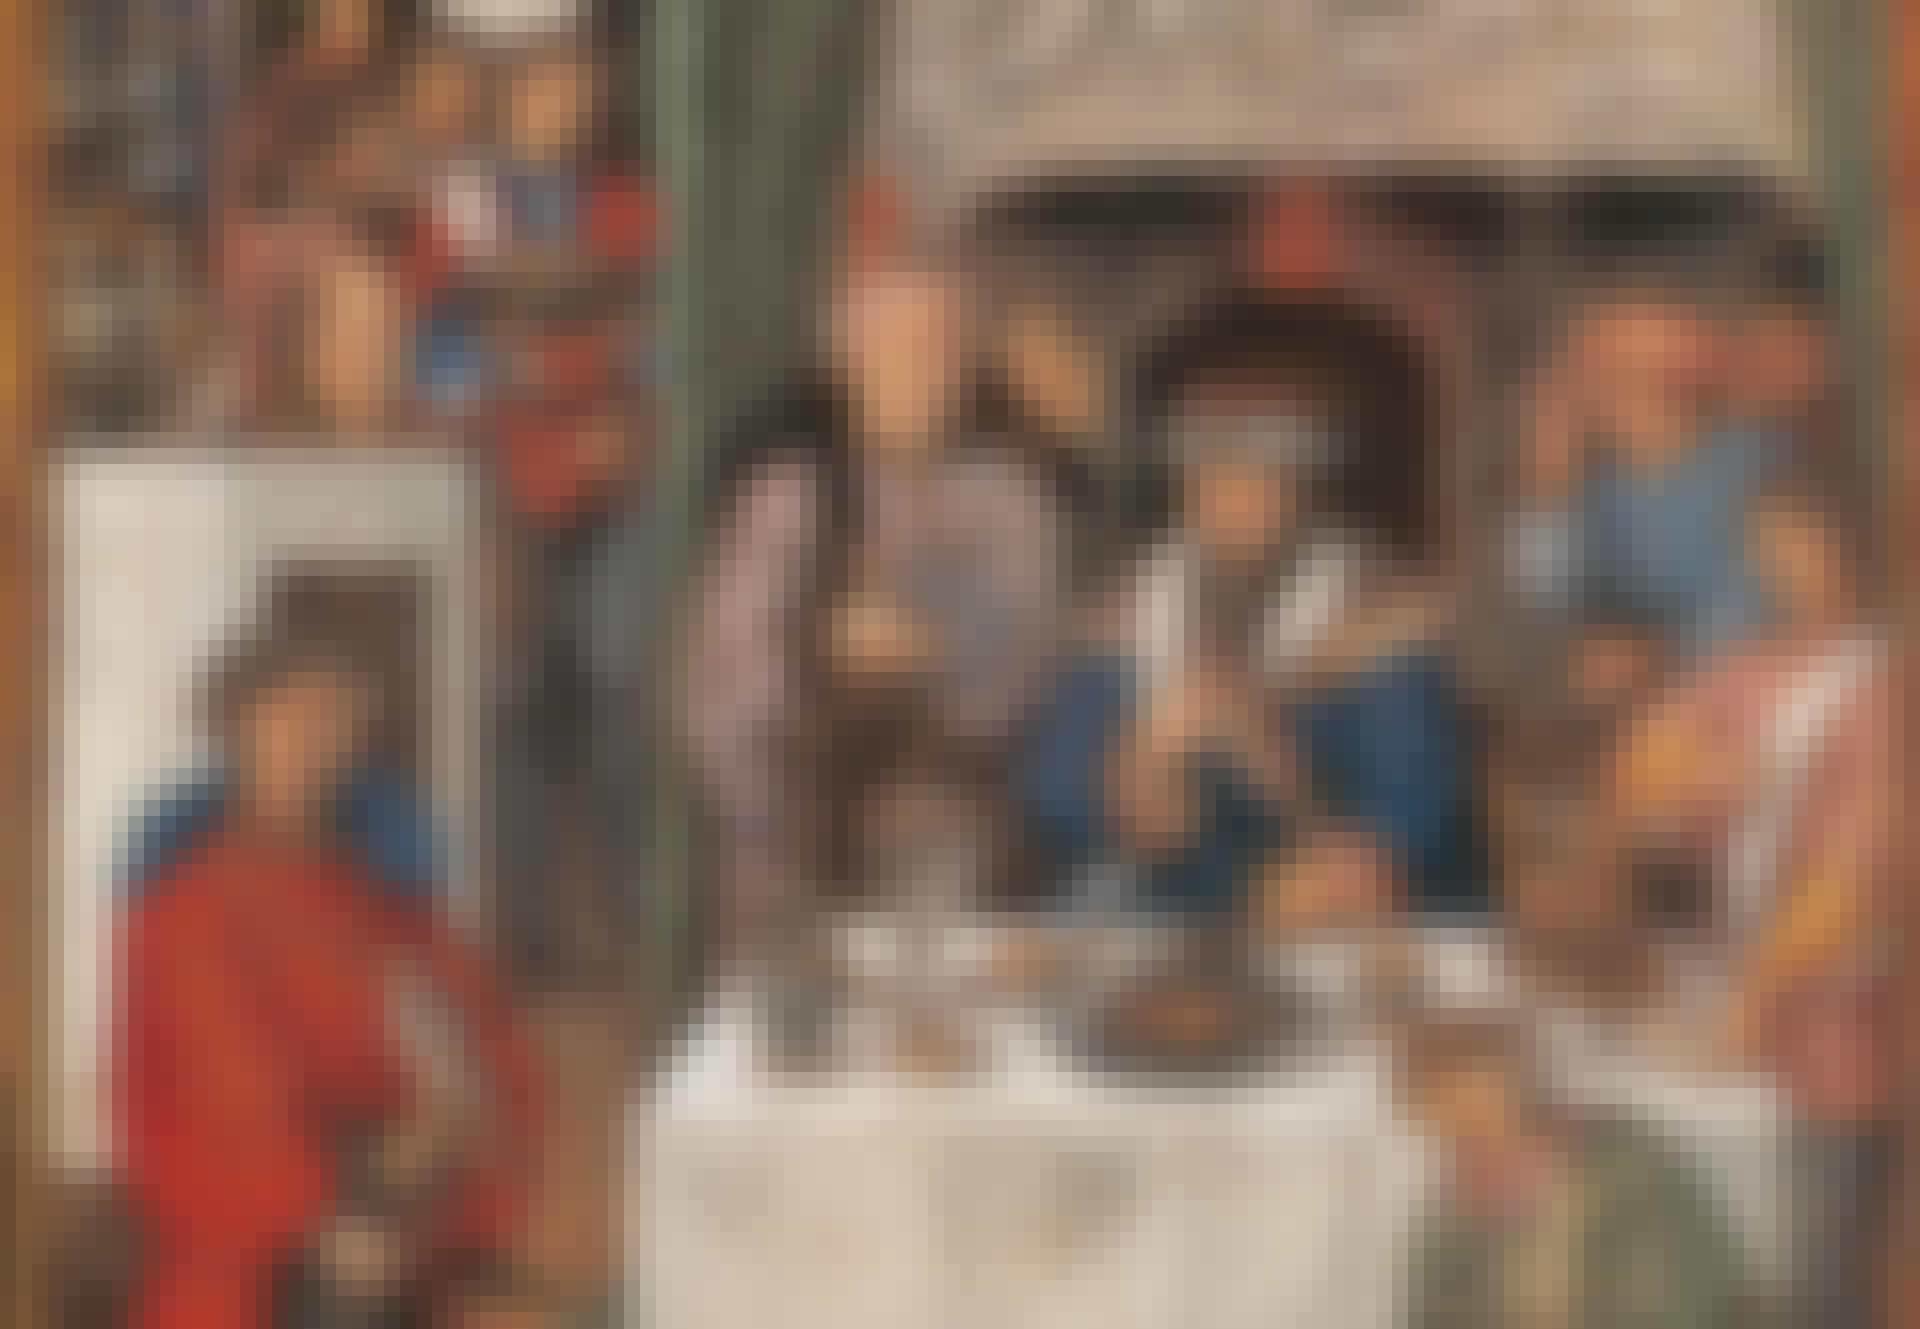 The month of January: Rich man's banquet